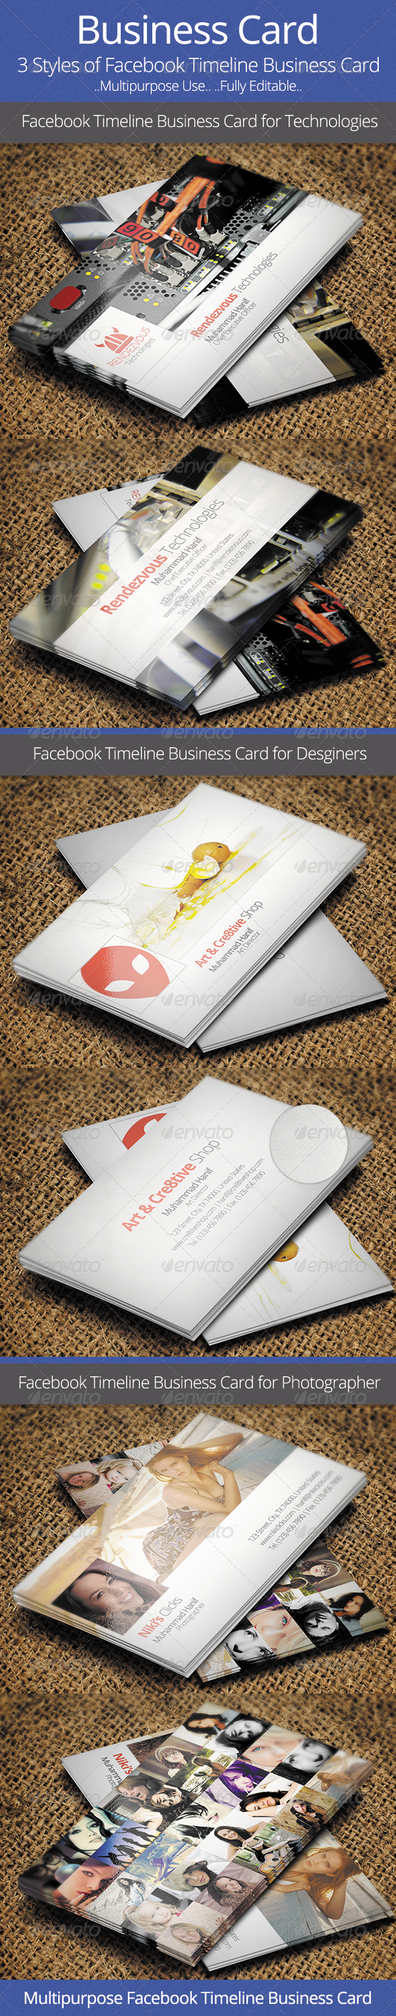 Facebook Timeline Business Card by hanifharoon